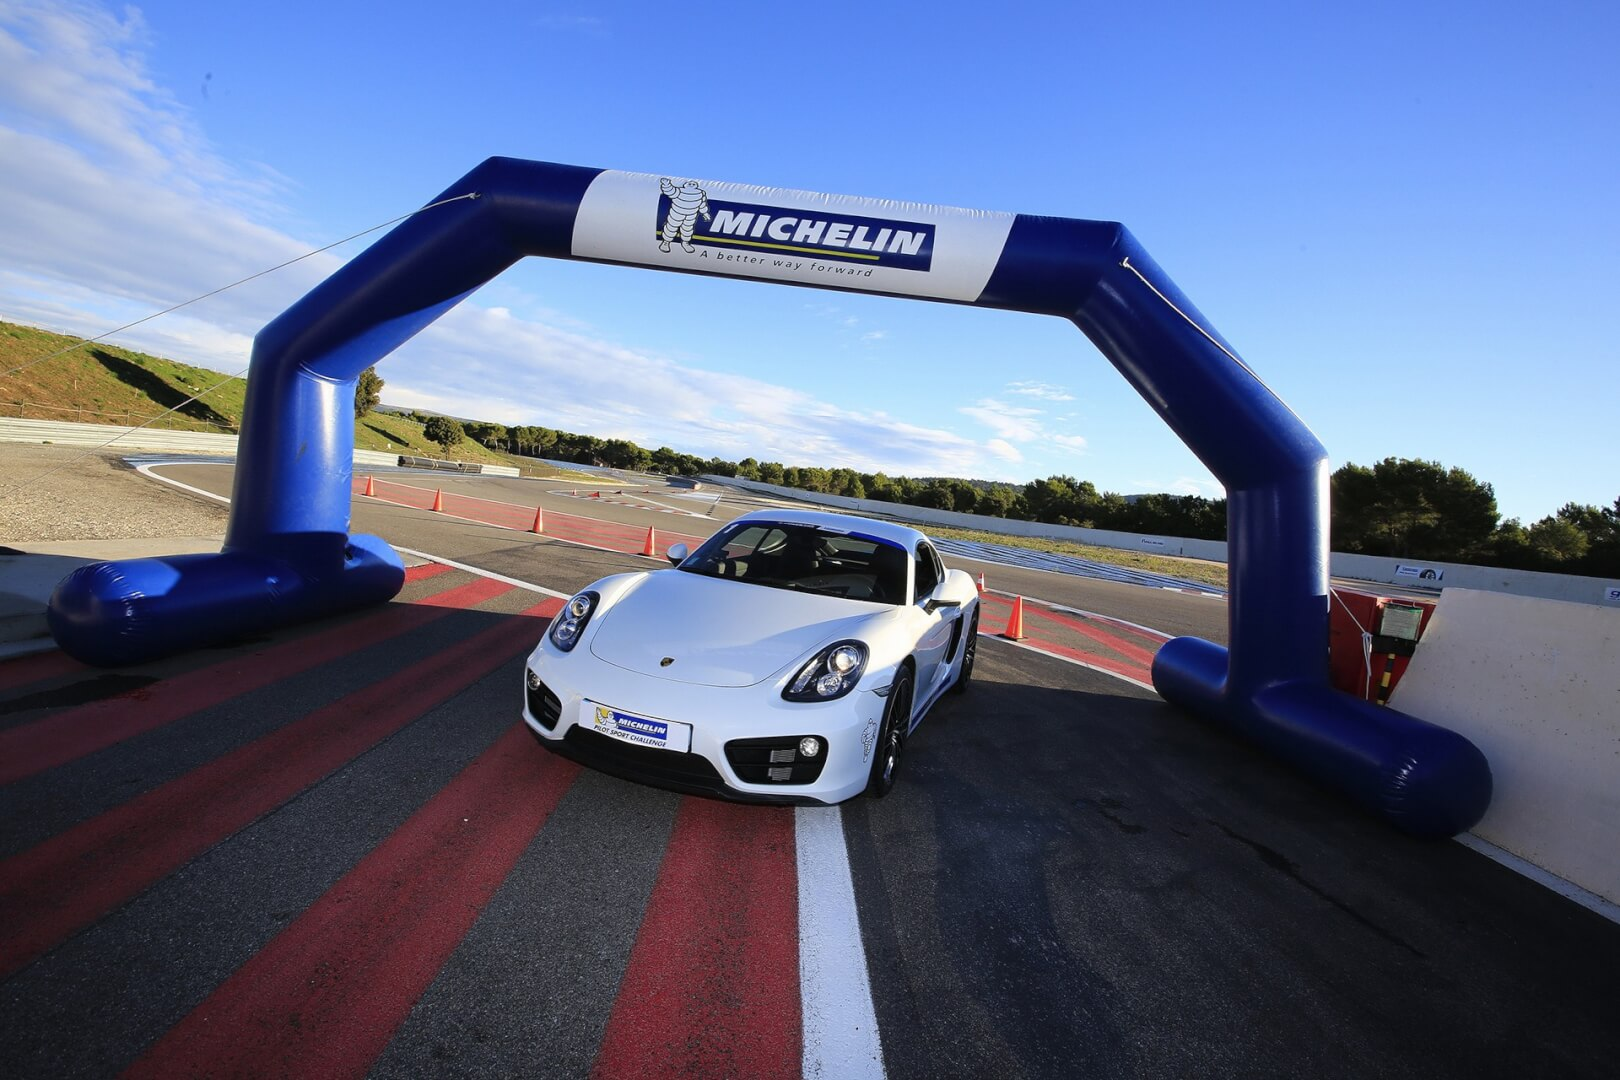 Arche gonflable promotionnelle Michelin sur Circuit